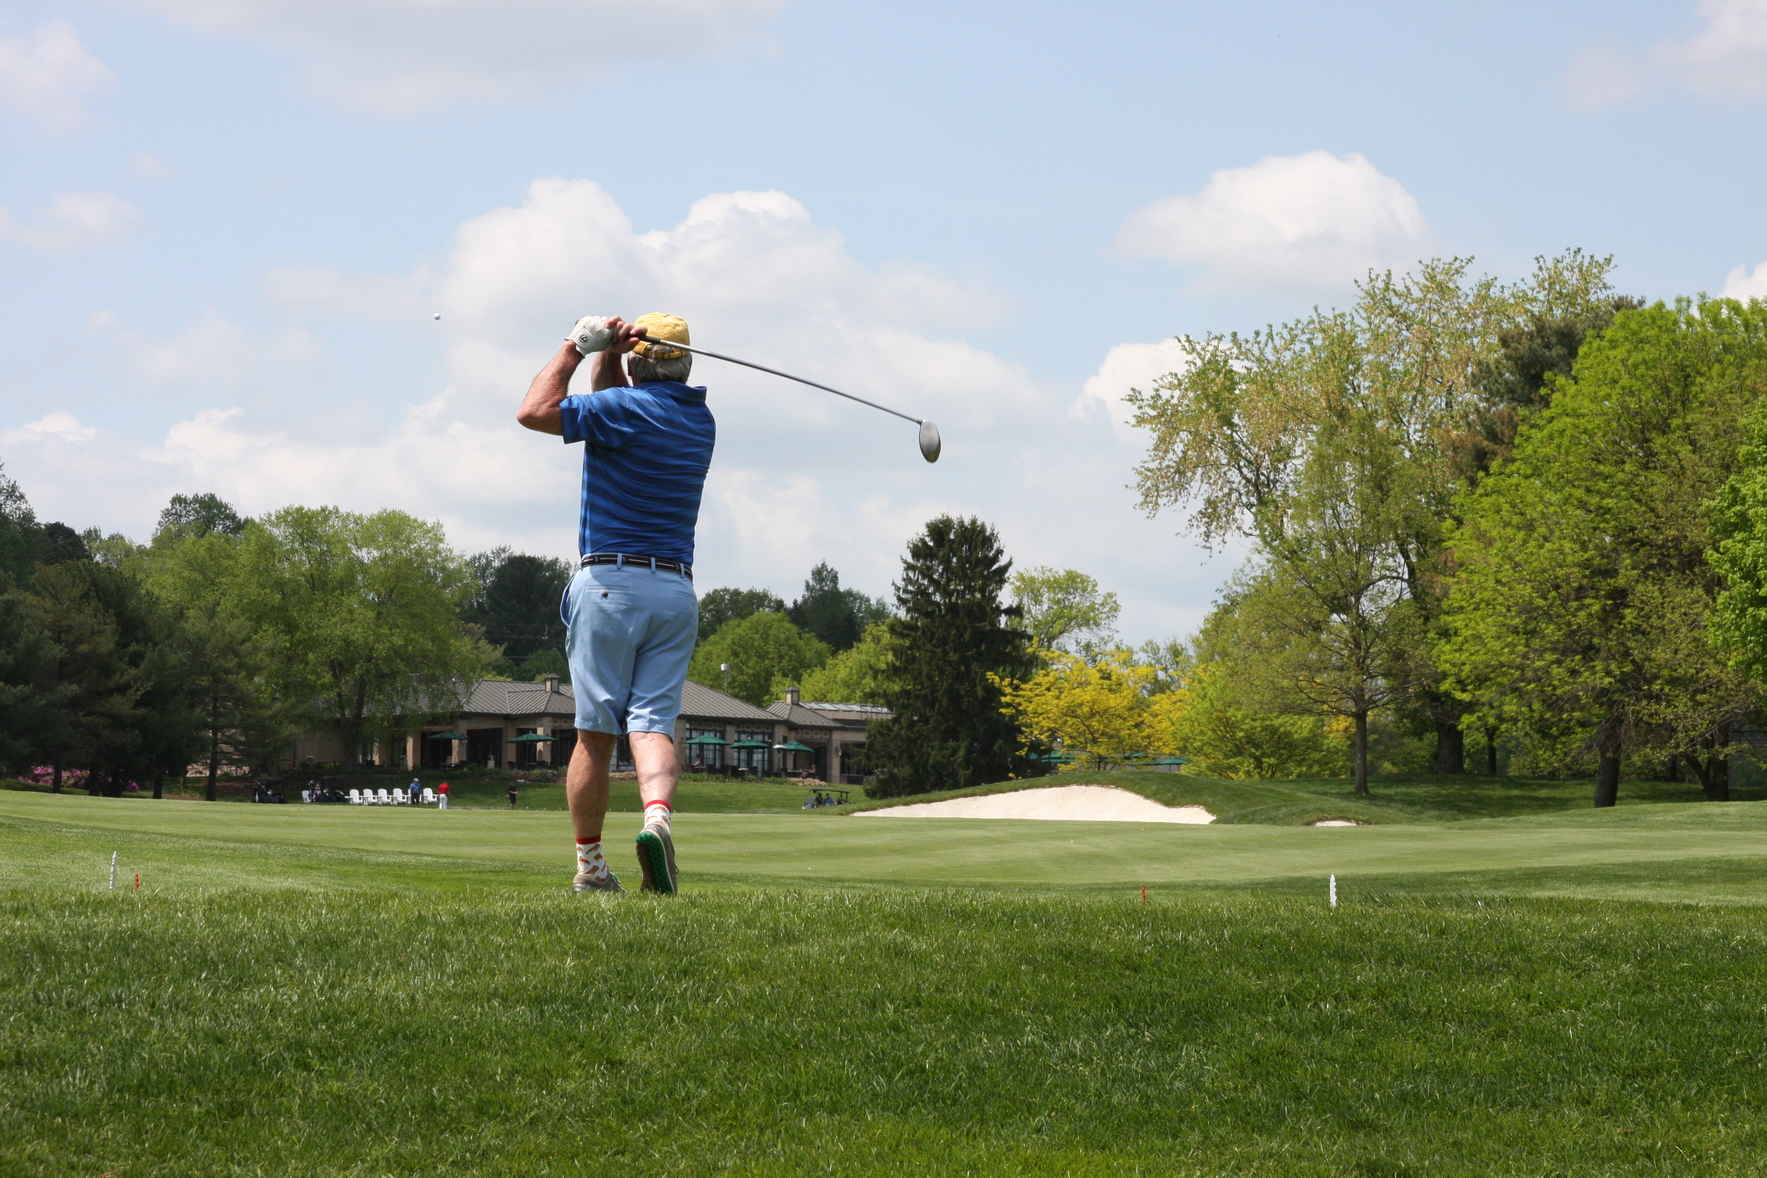 The 4th Annual Dick and Jody Memorial Golf Tournament image